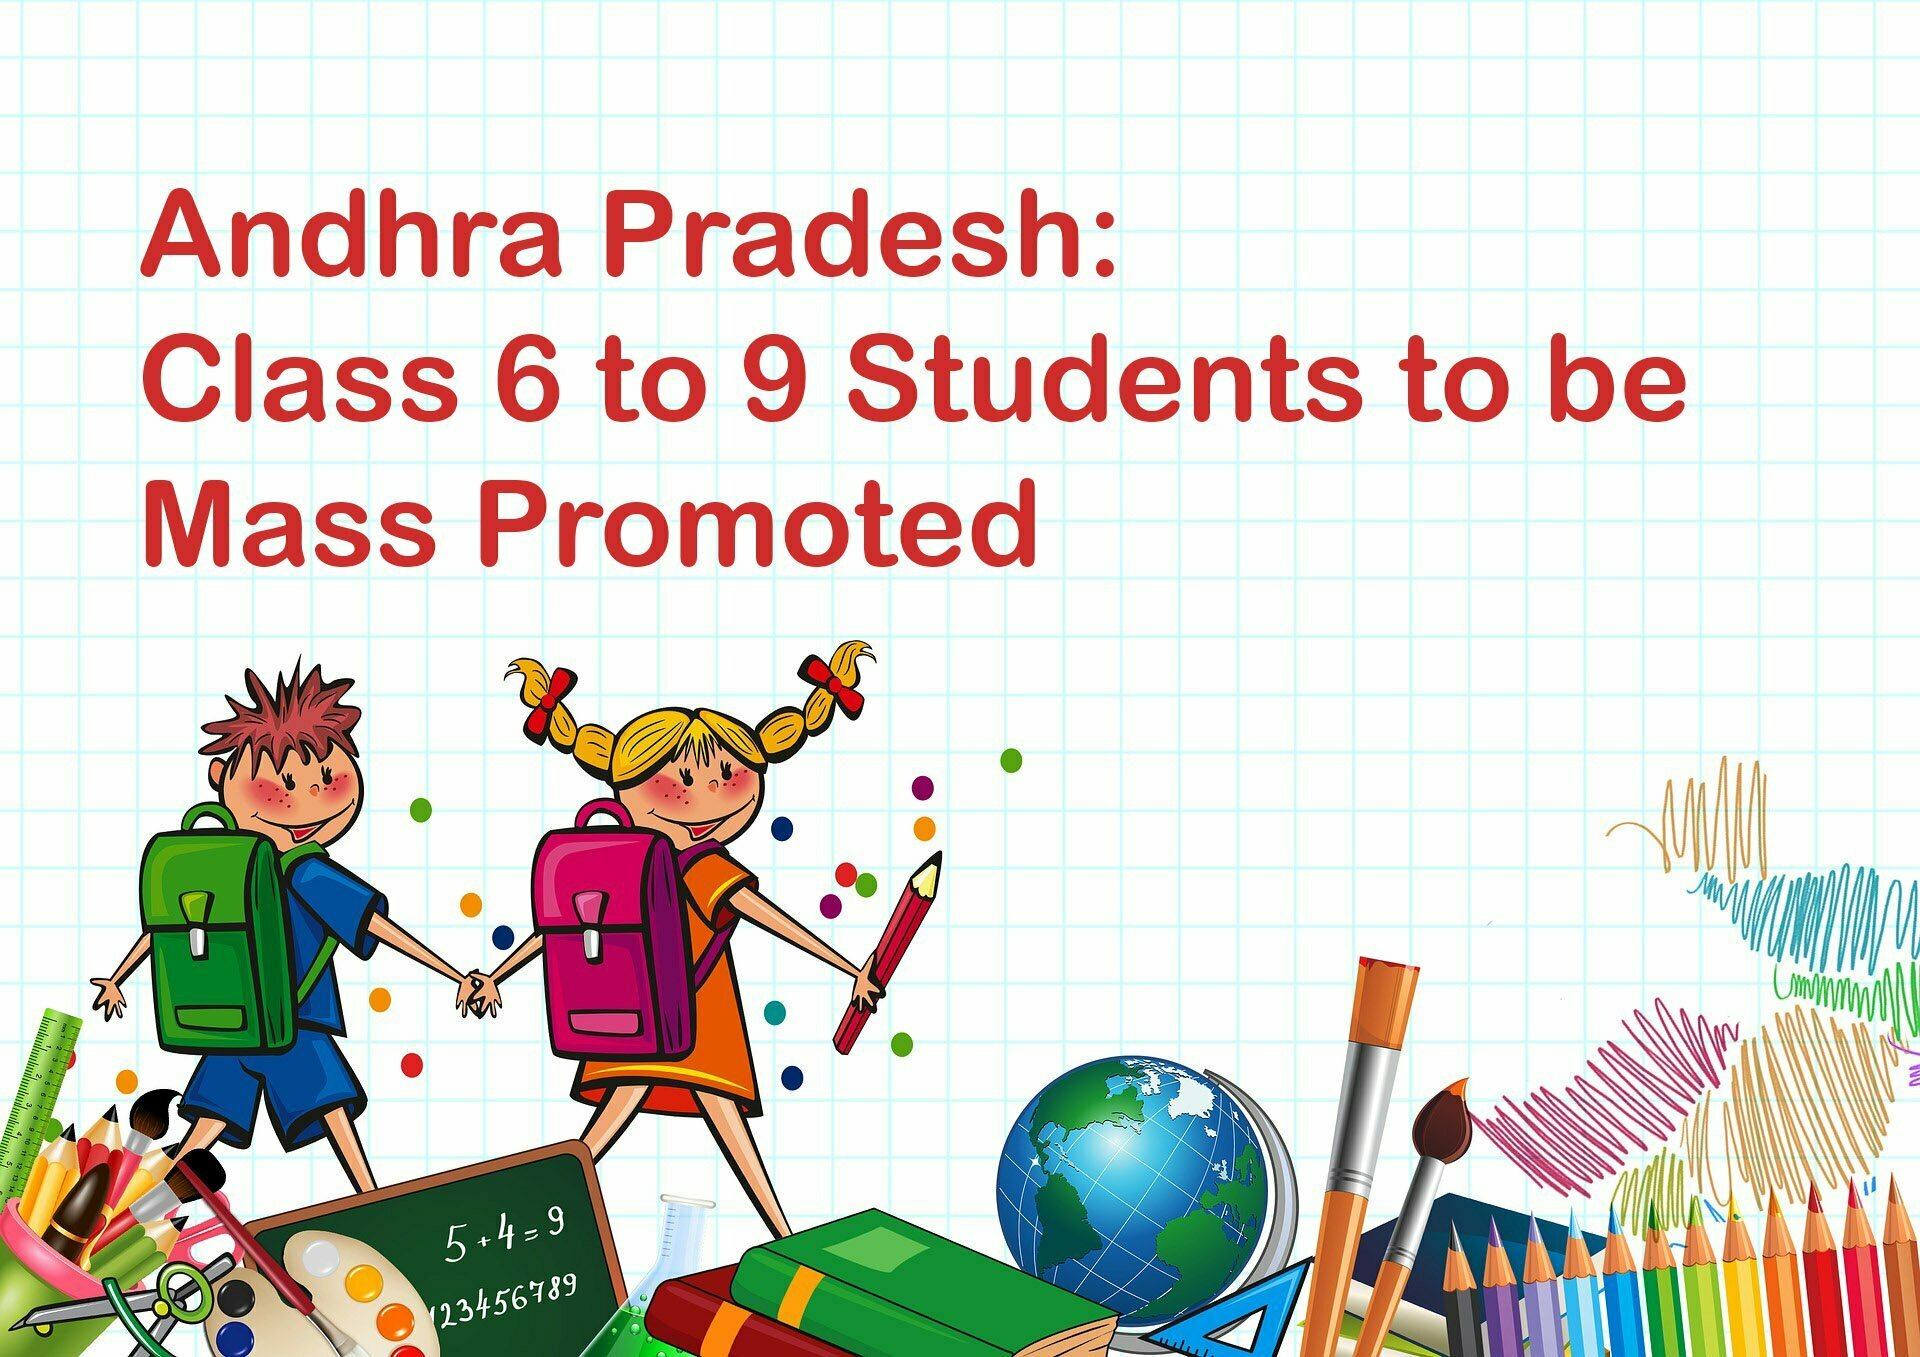 Andhra Pradesh Class 6 to 9 Students to be Mass Promoted